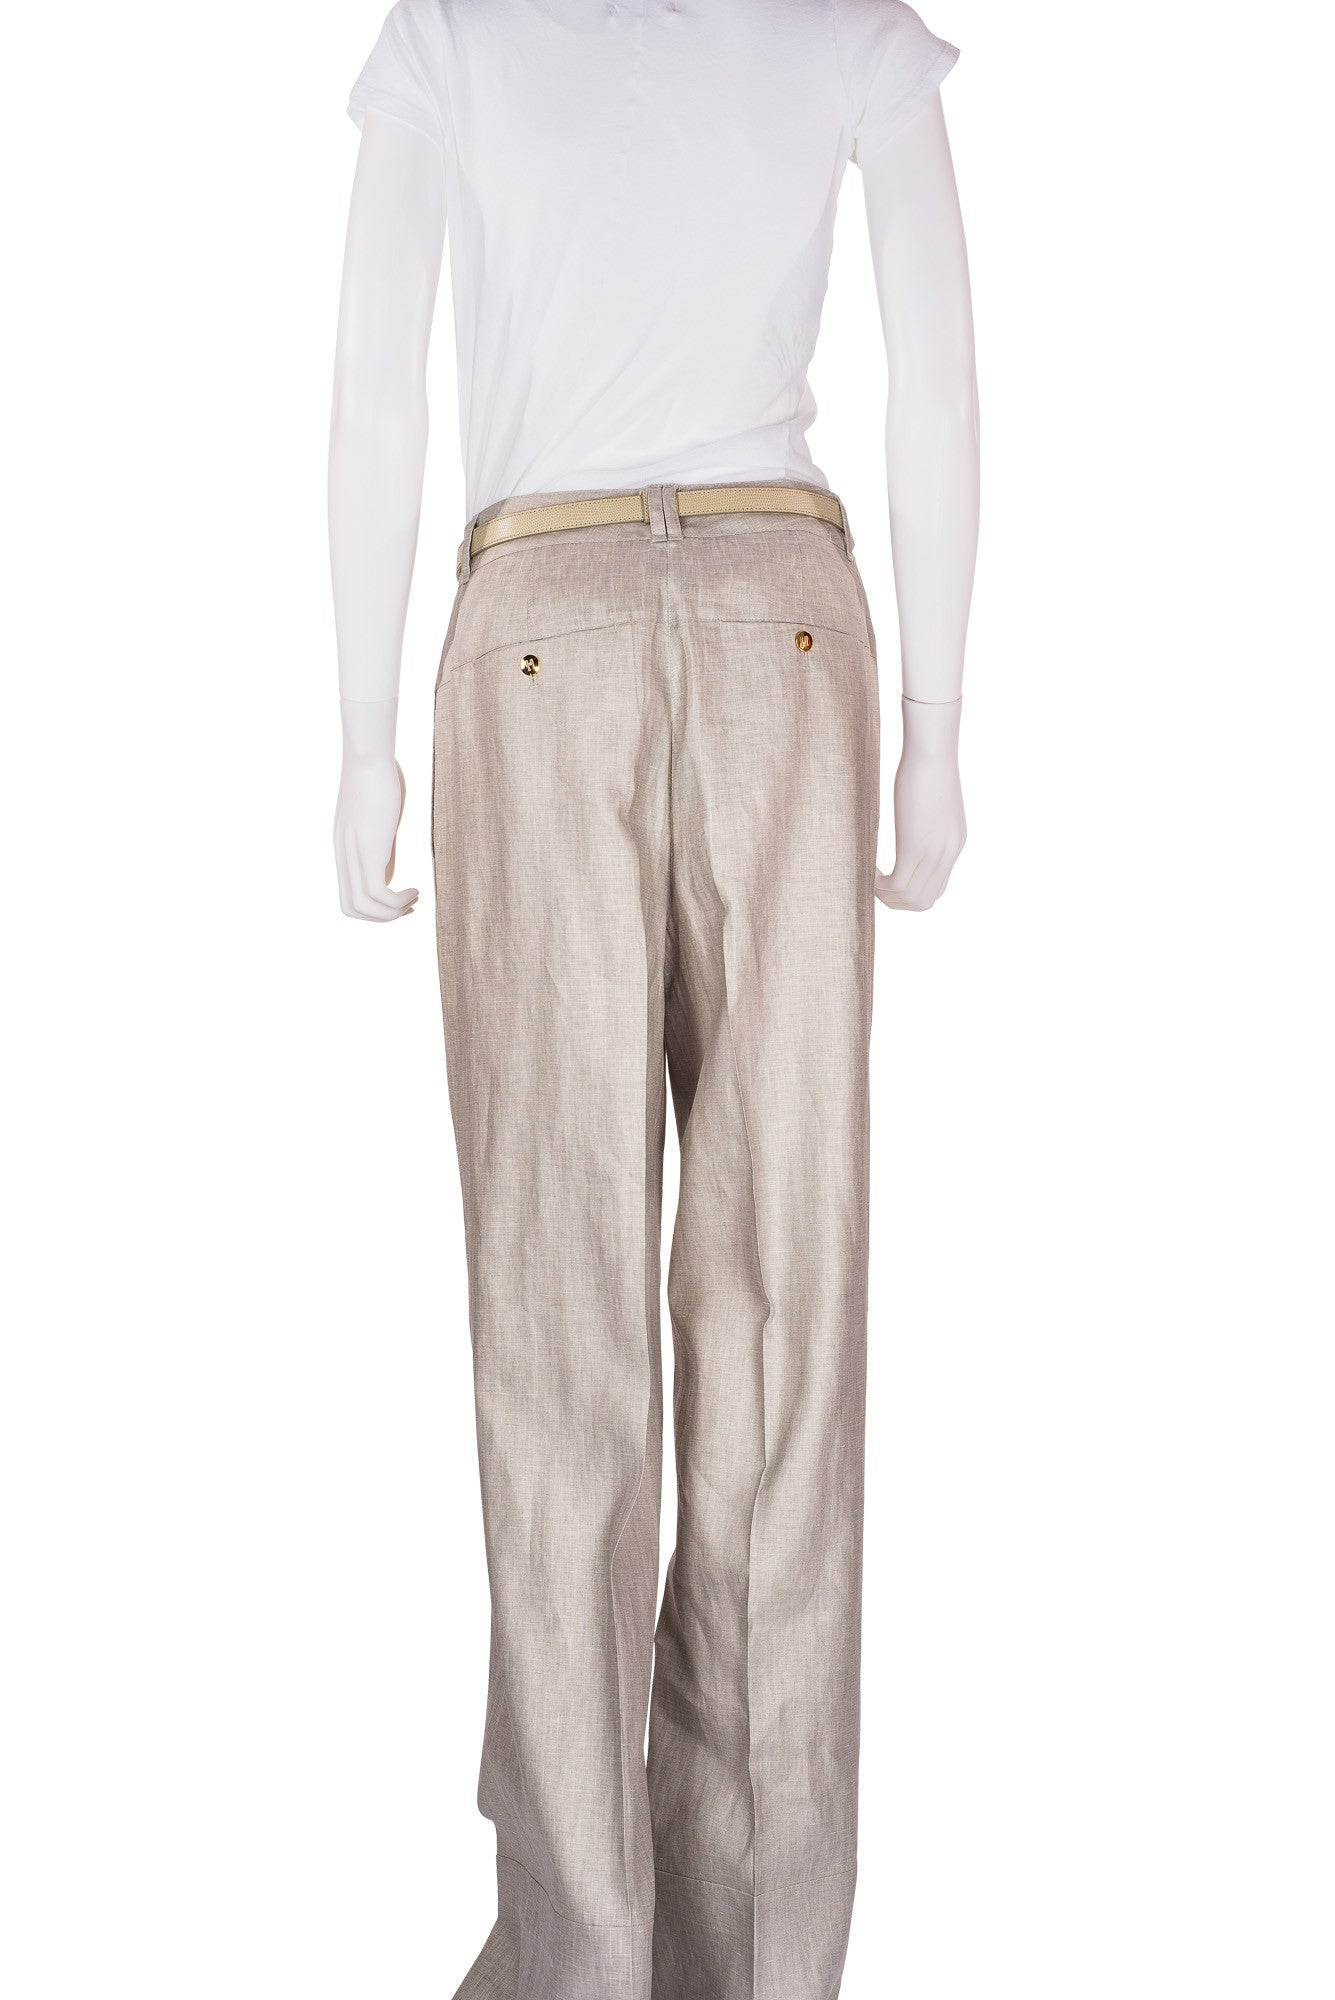 ROBERT RODRIGUEZ Wide Leg Pants